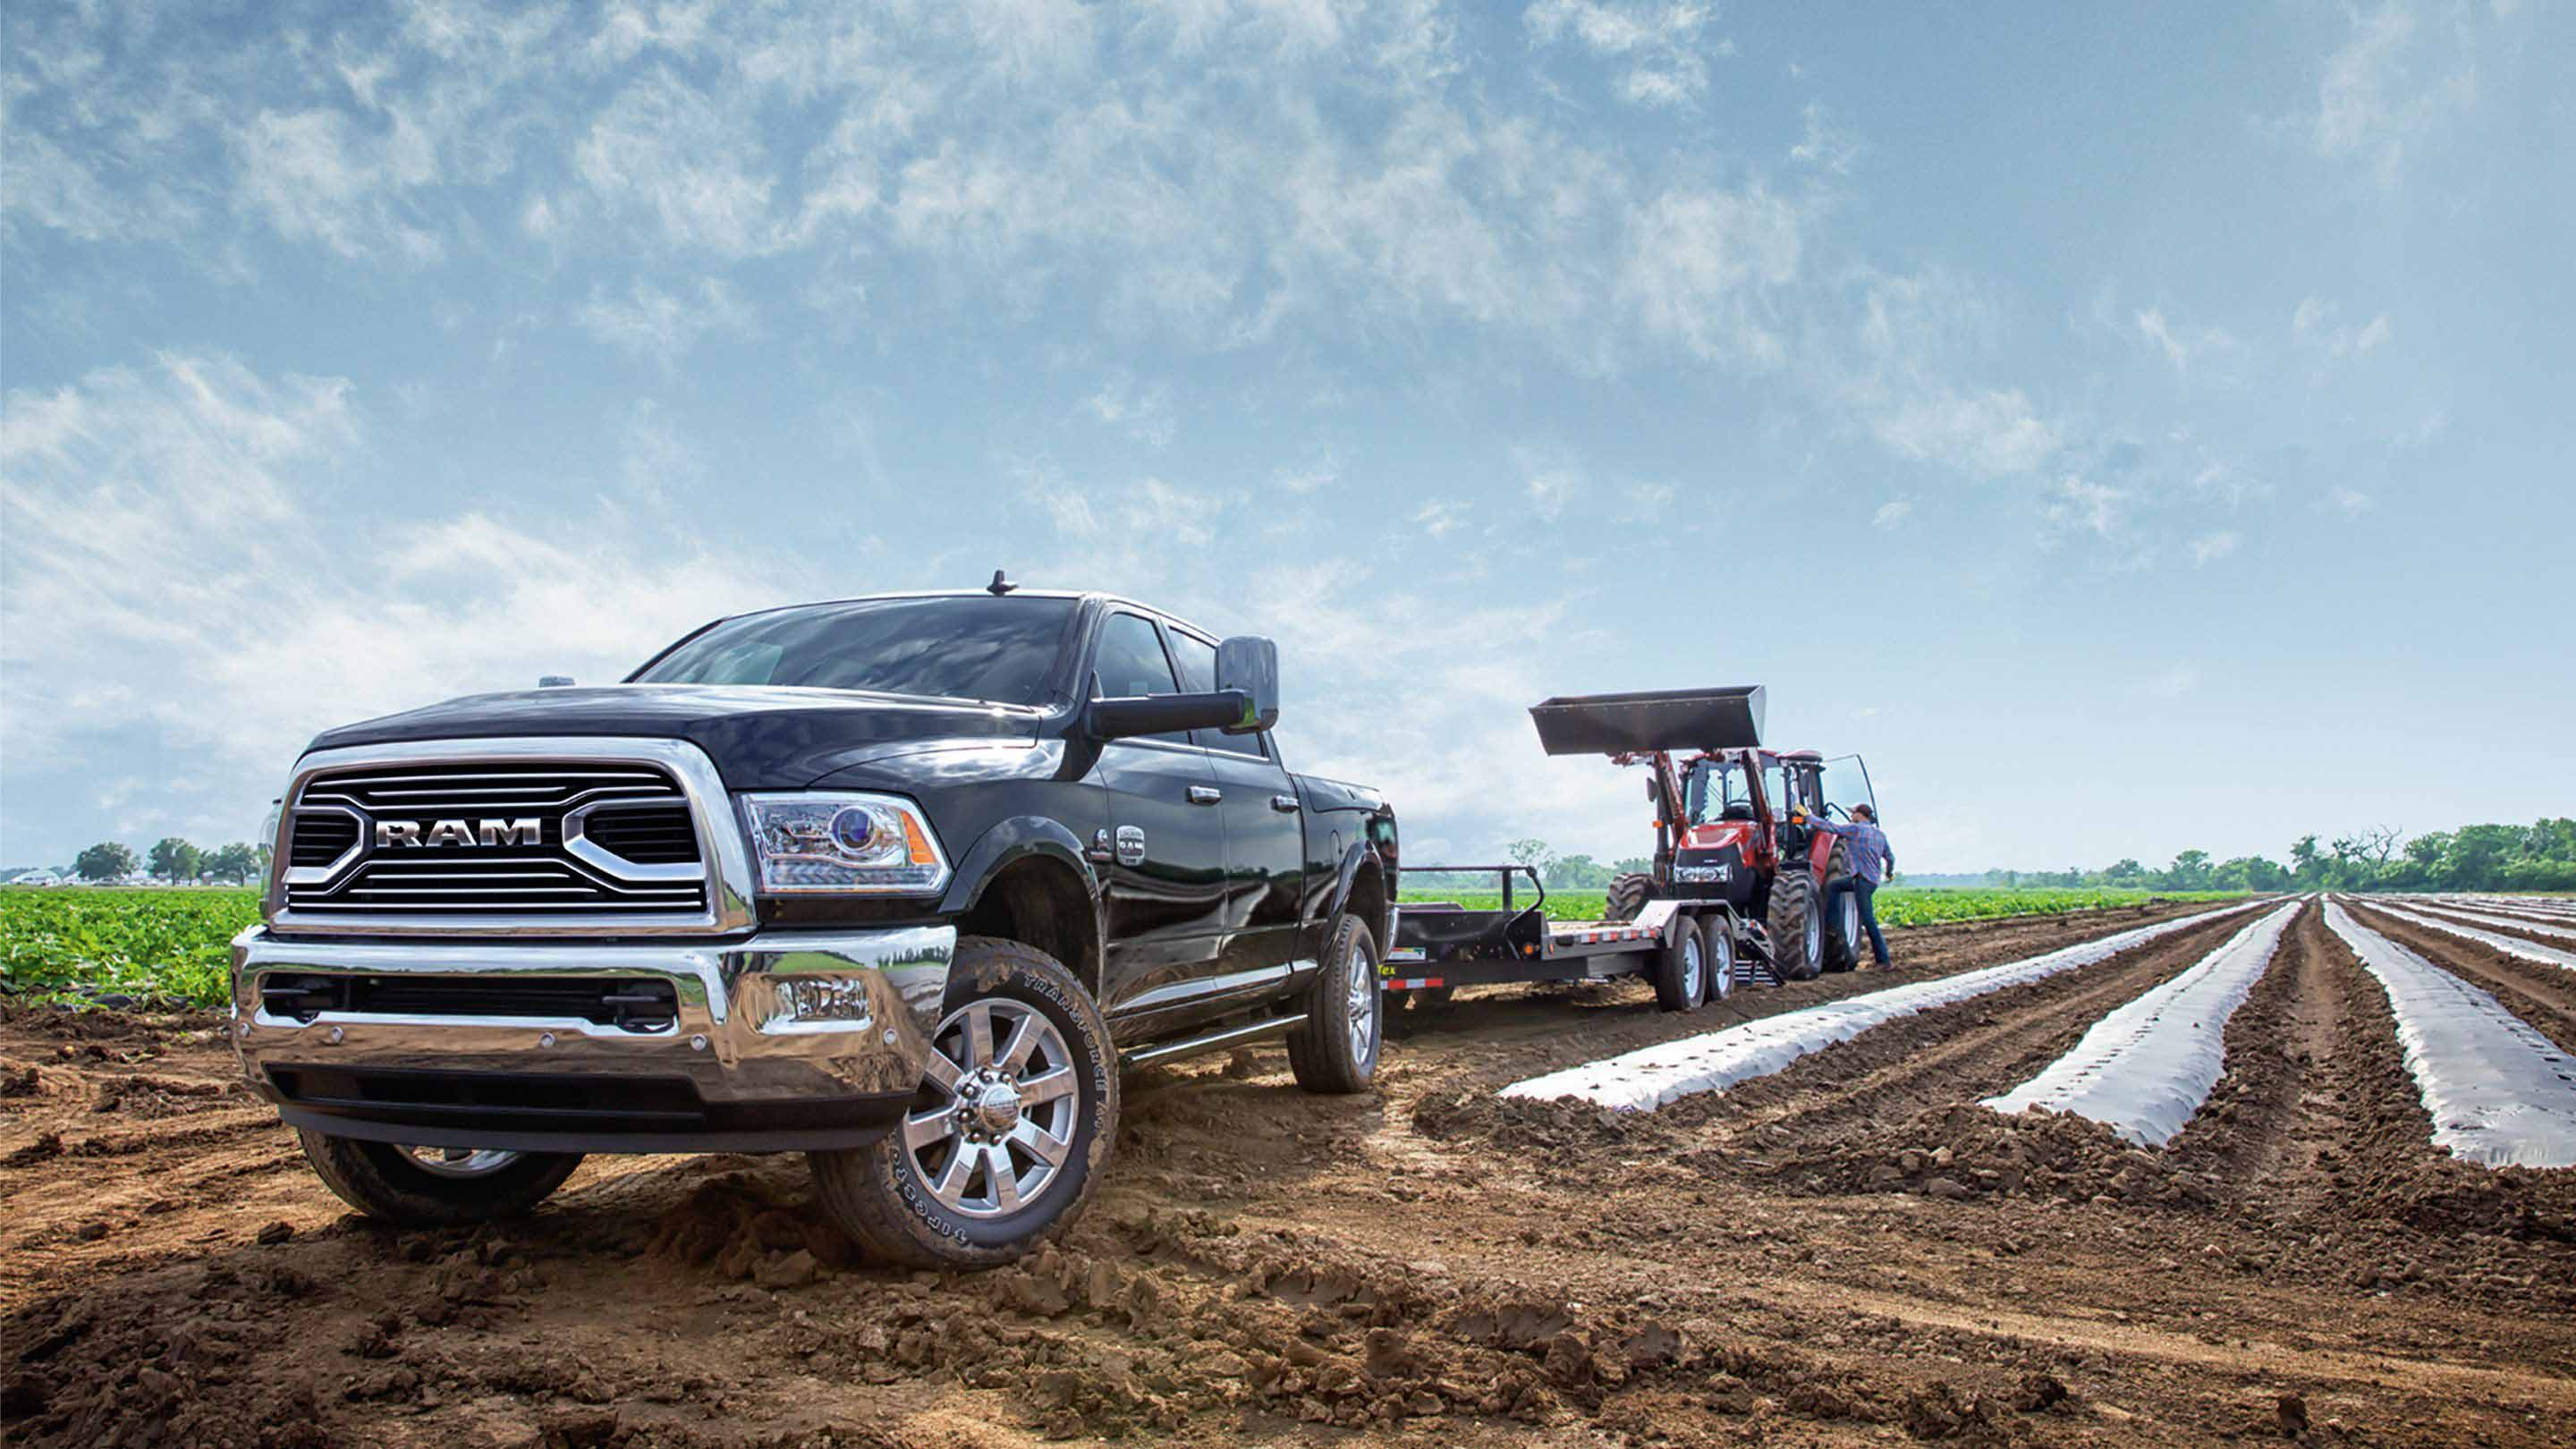 2018 Ram Trucks 2500 Towing Off Road